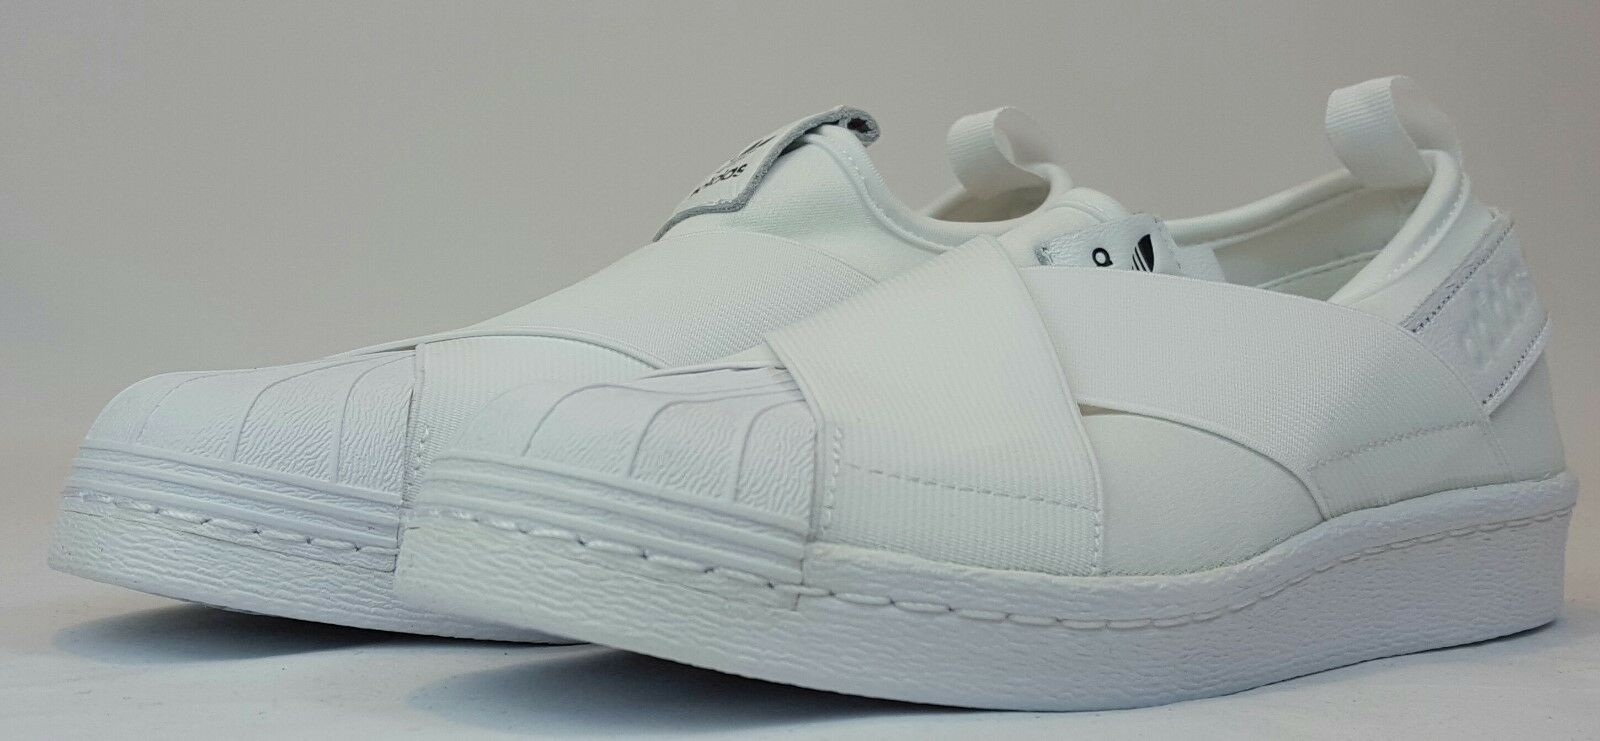 EXCLUSIVE ADIDAS SIZES SUPERSTAR WOMEN SLIP ON SIZES ADIDAS 5-10 $64.50 S81338 FREE SHIPPING 1a6faa